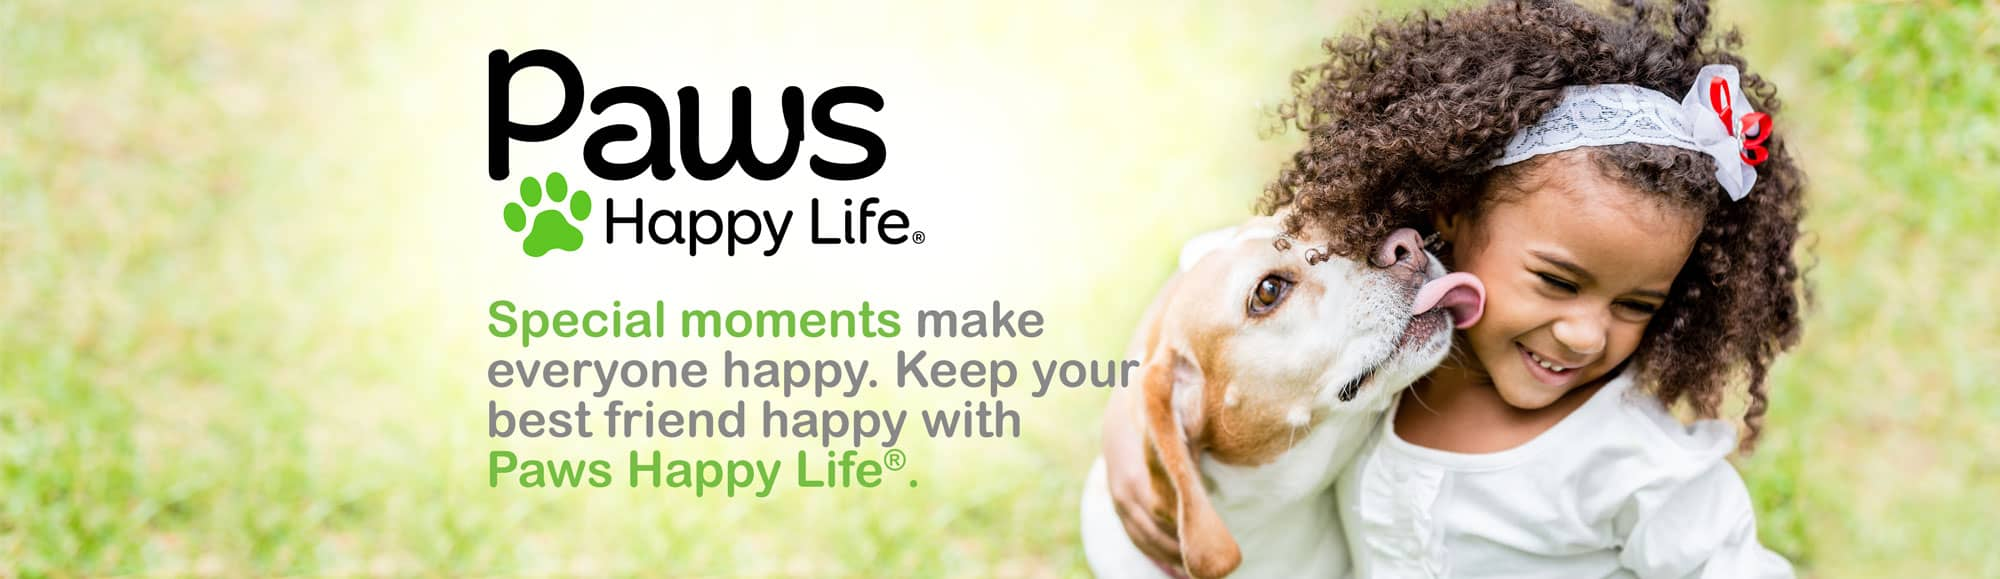 Special moments make everyone happy. Keep your best friends happy with Paws Happy Life.